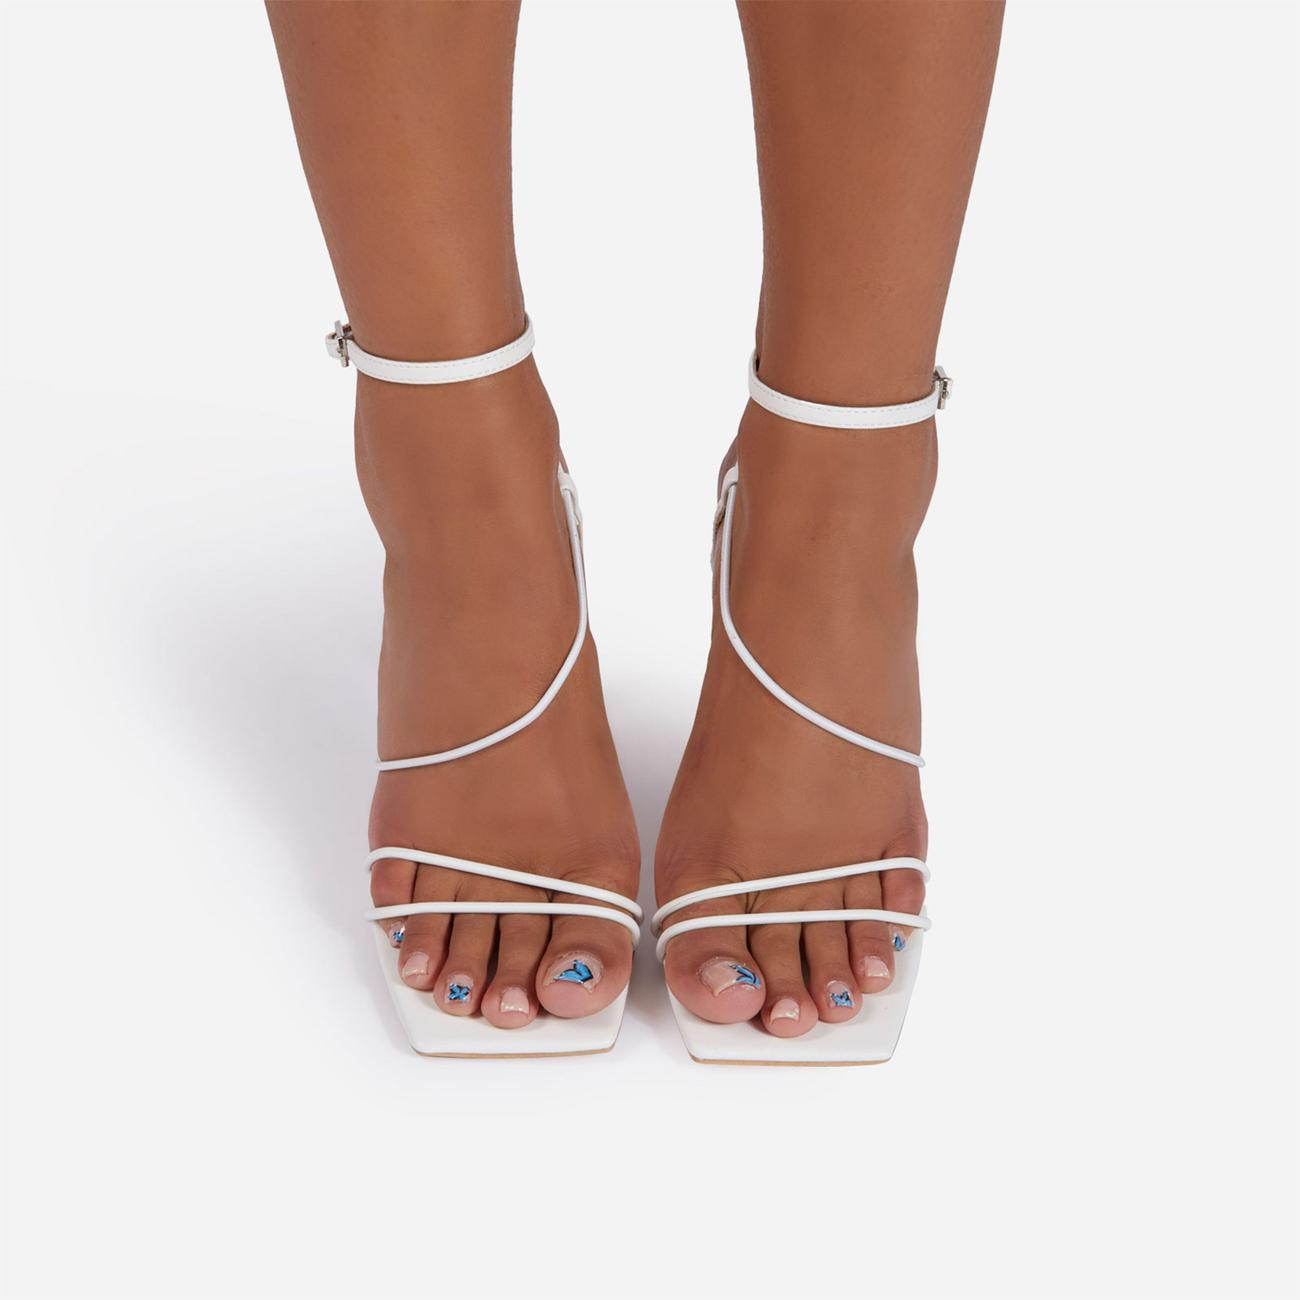 Drama-Queen Barely There Square Toe Clear Perspex Sculptured Heel In White Faux Leather Image 5